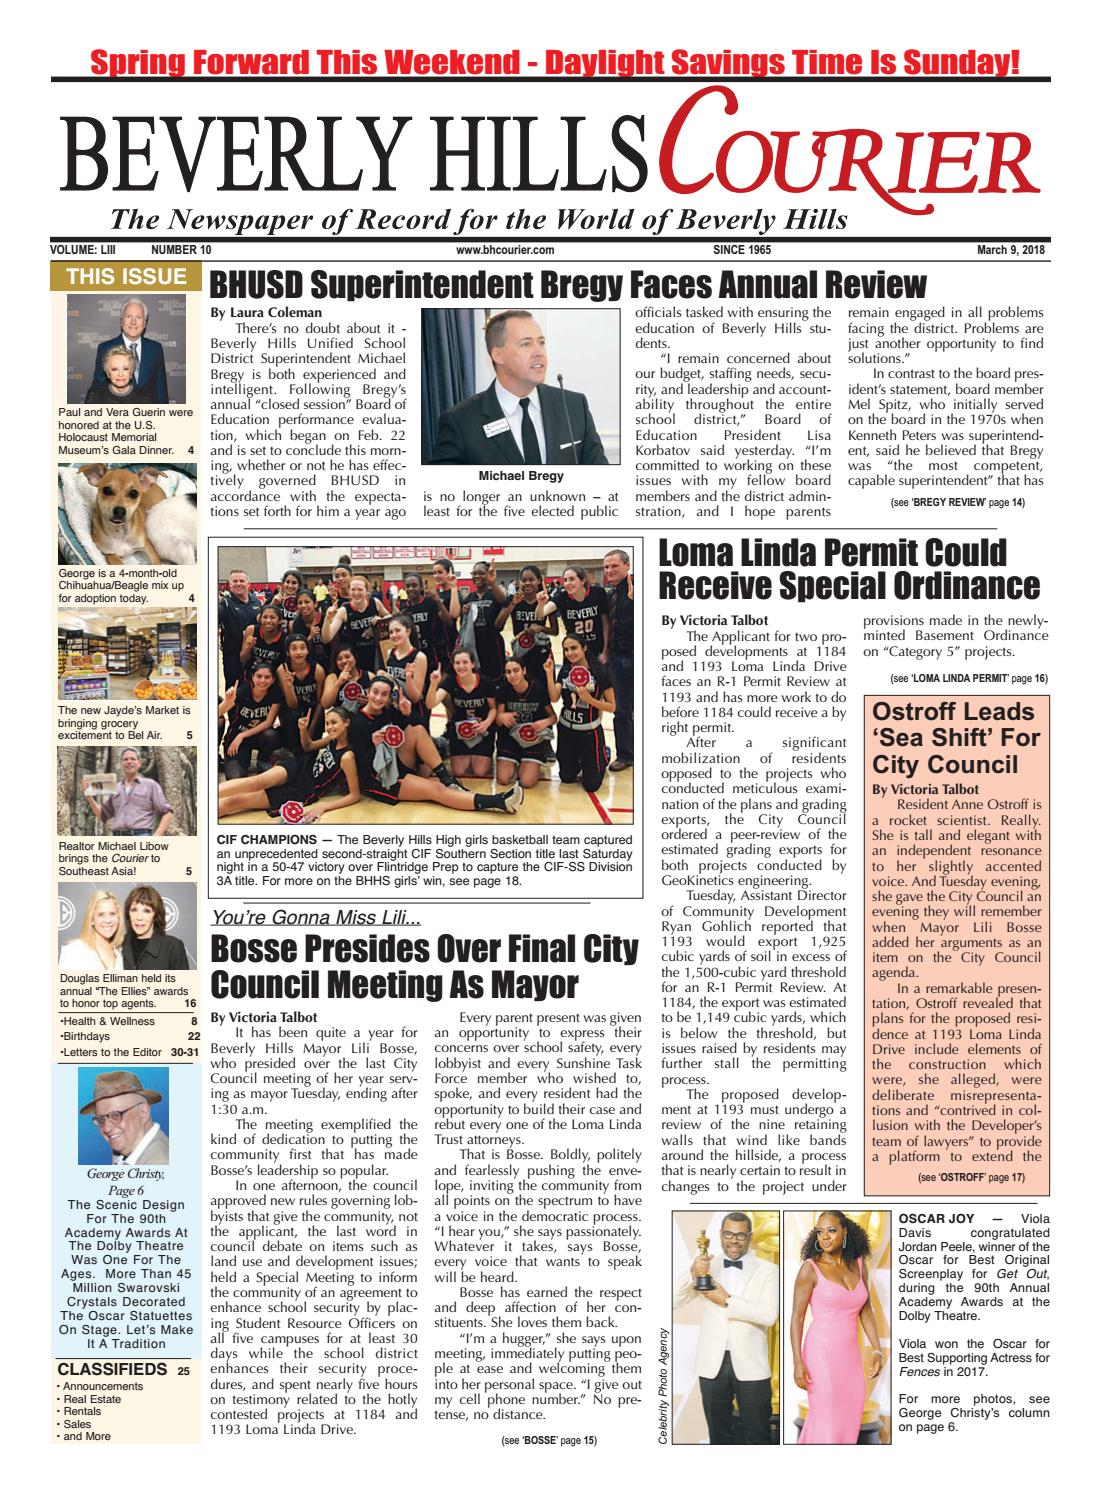 BHCourier E-edition 030918 by The Beverly Hills Courier - issuu